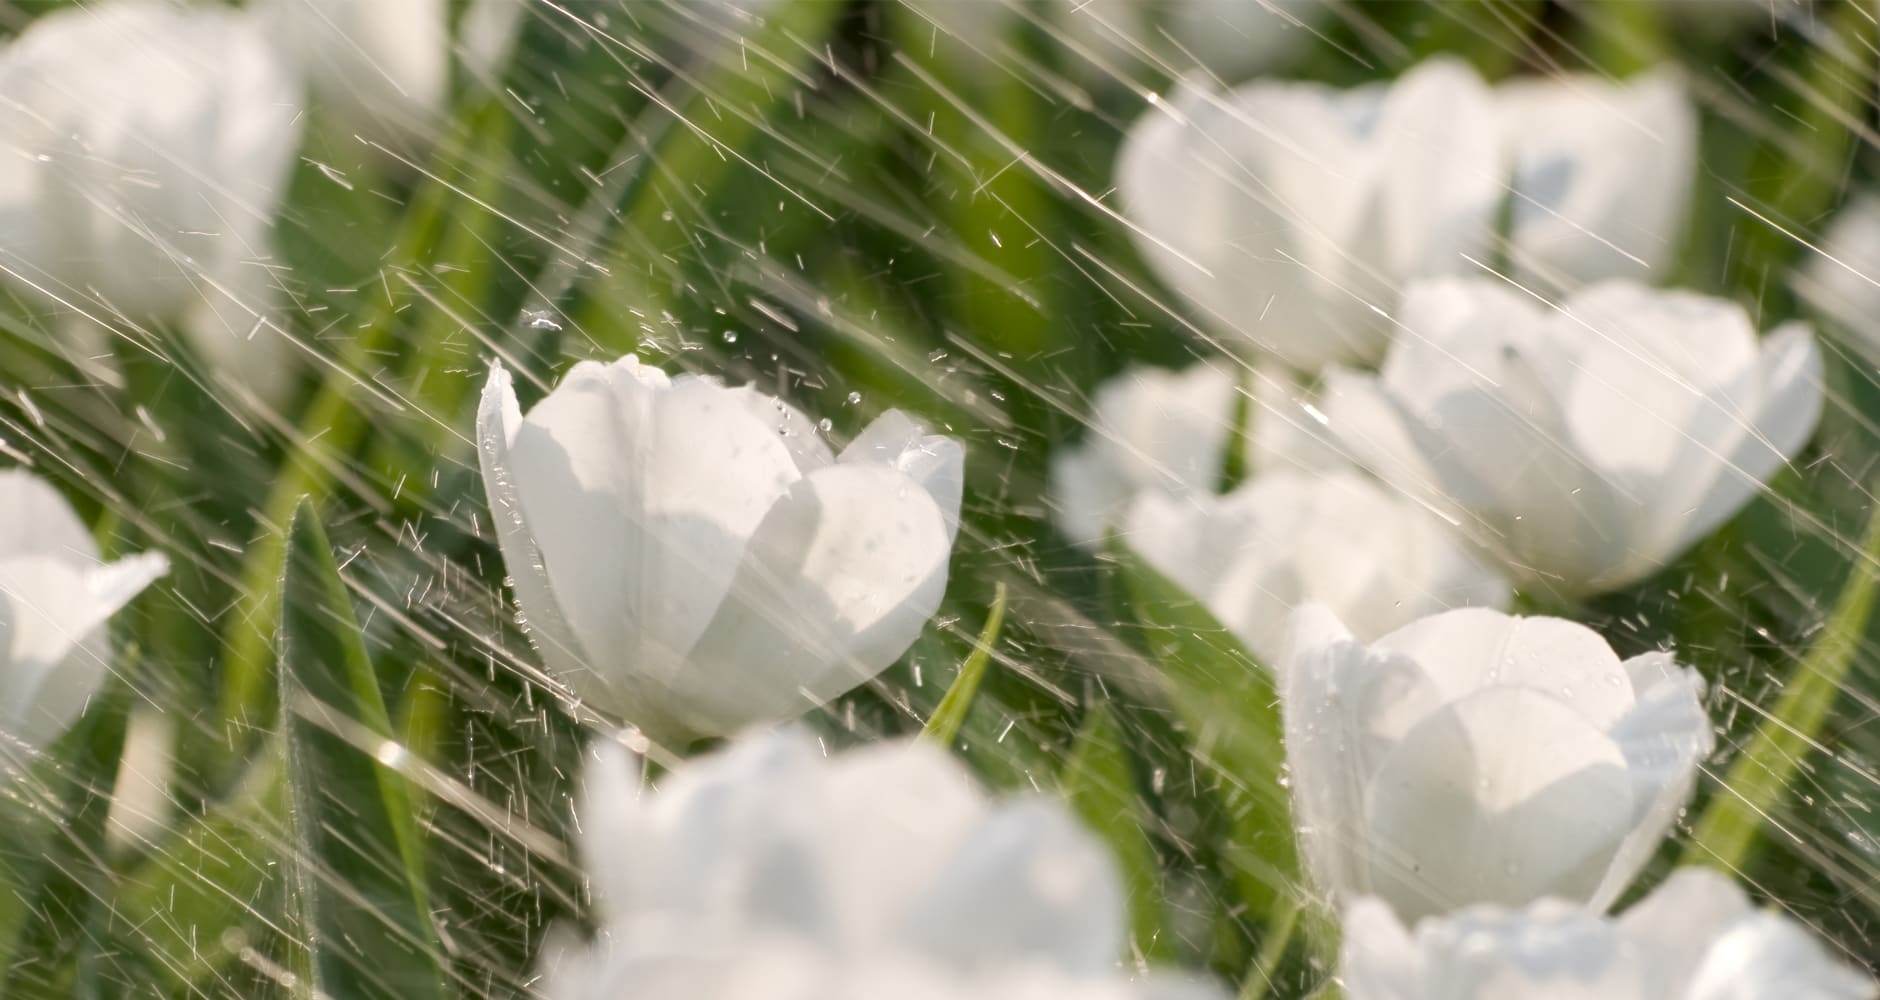 April Showers bring May flowers - with white flowers in the rain